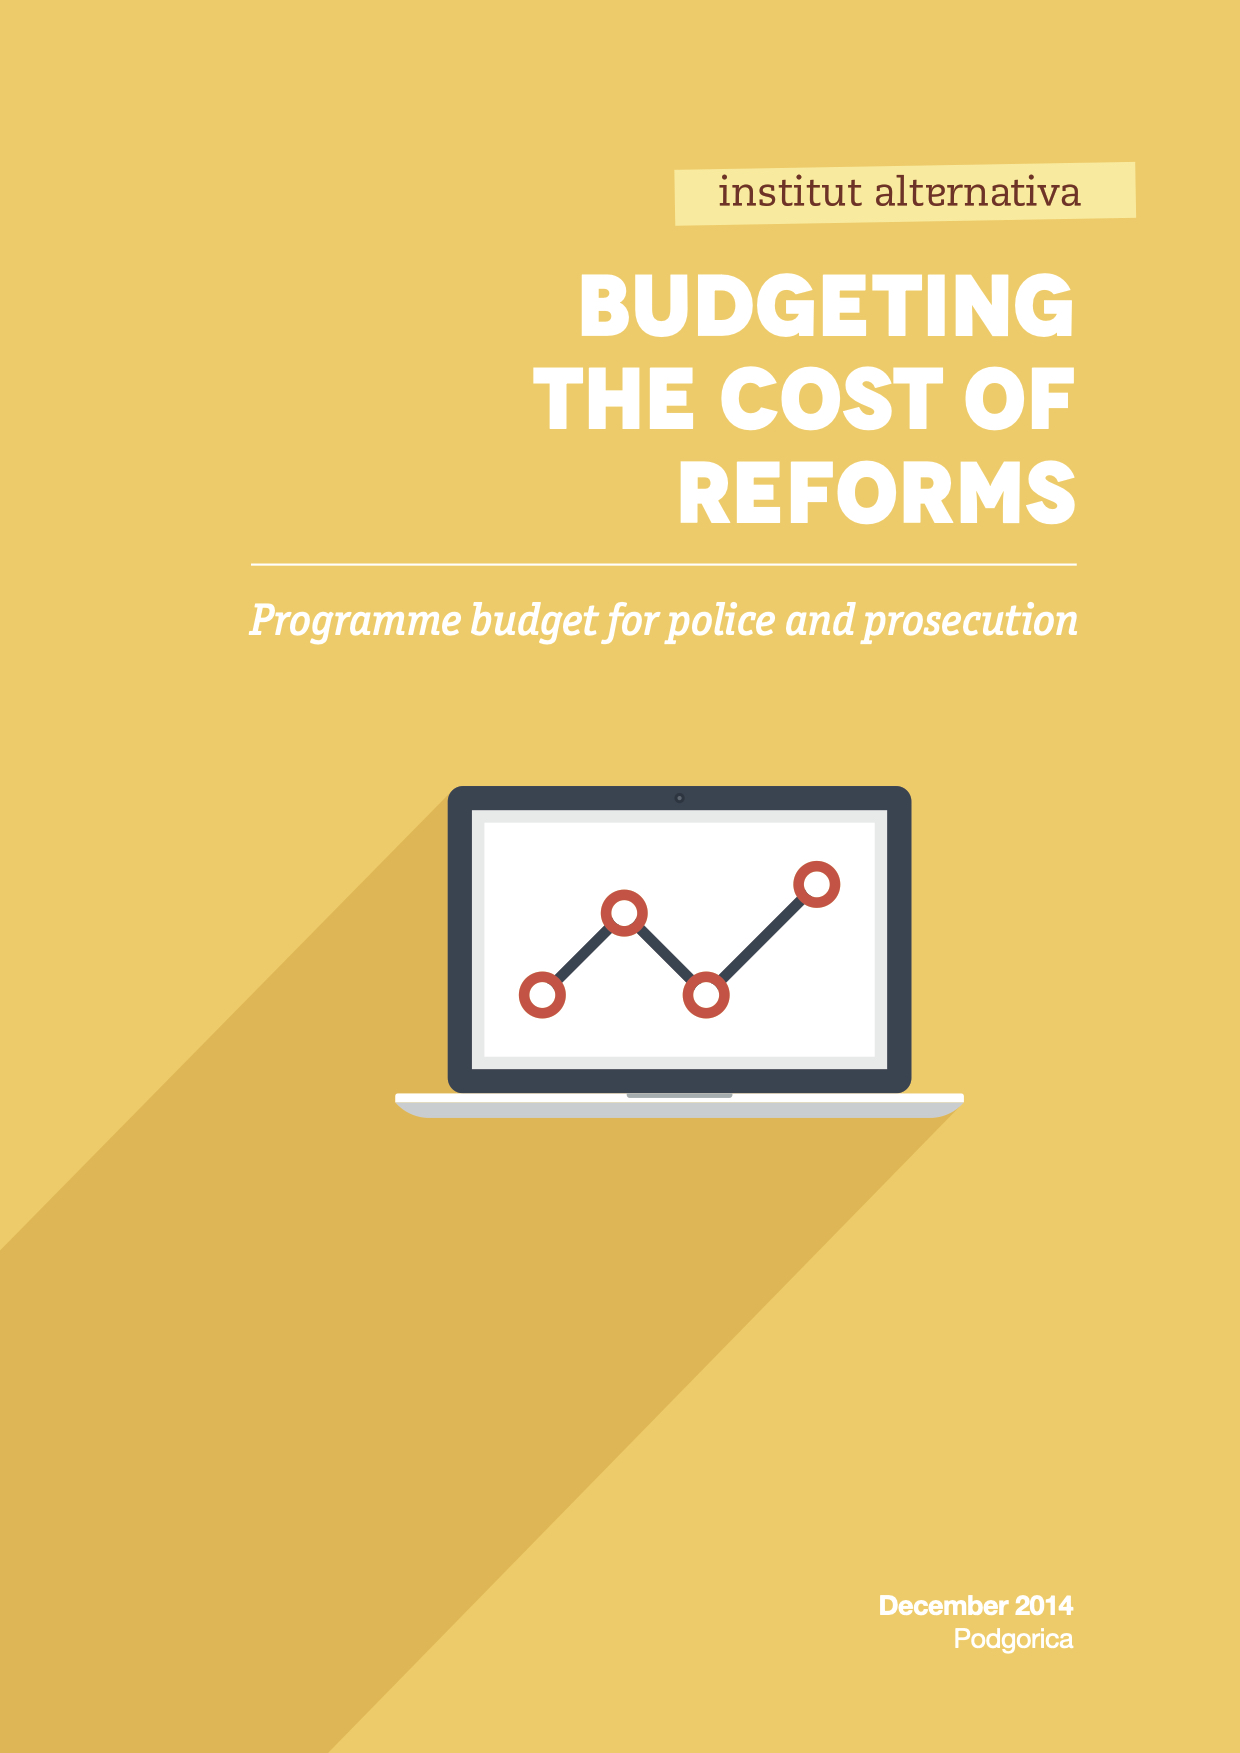 Budgeting the Cost of Reforms - Programme Budget for Police and Prosecution